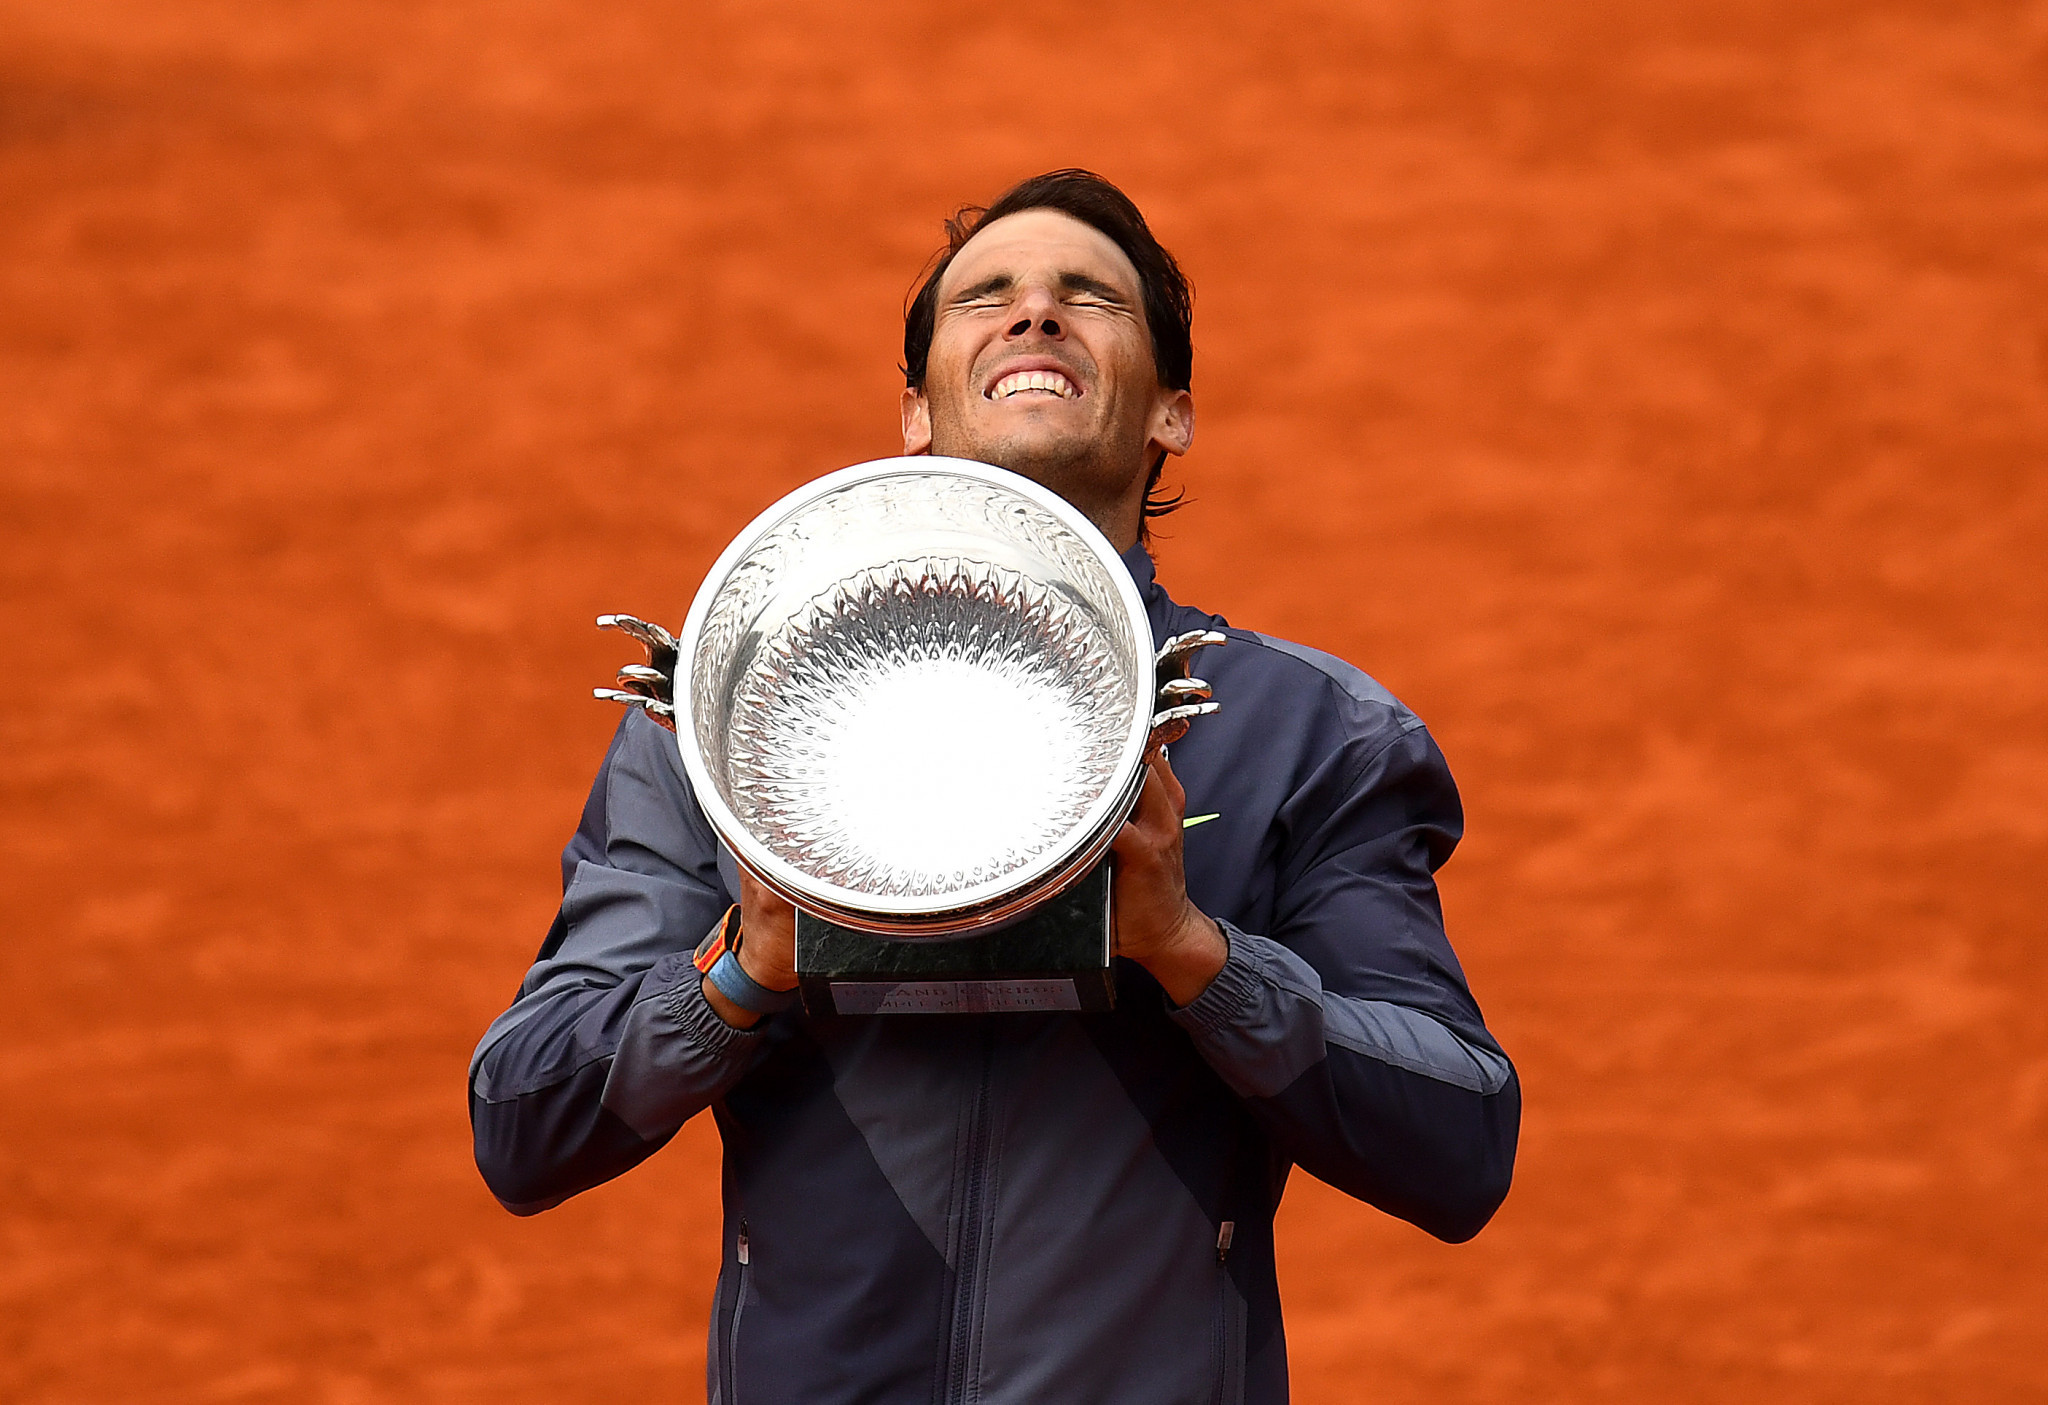 The French Open is the latest event to be postponed because of the pandemic ©Getty Images